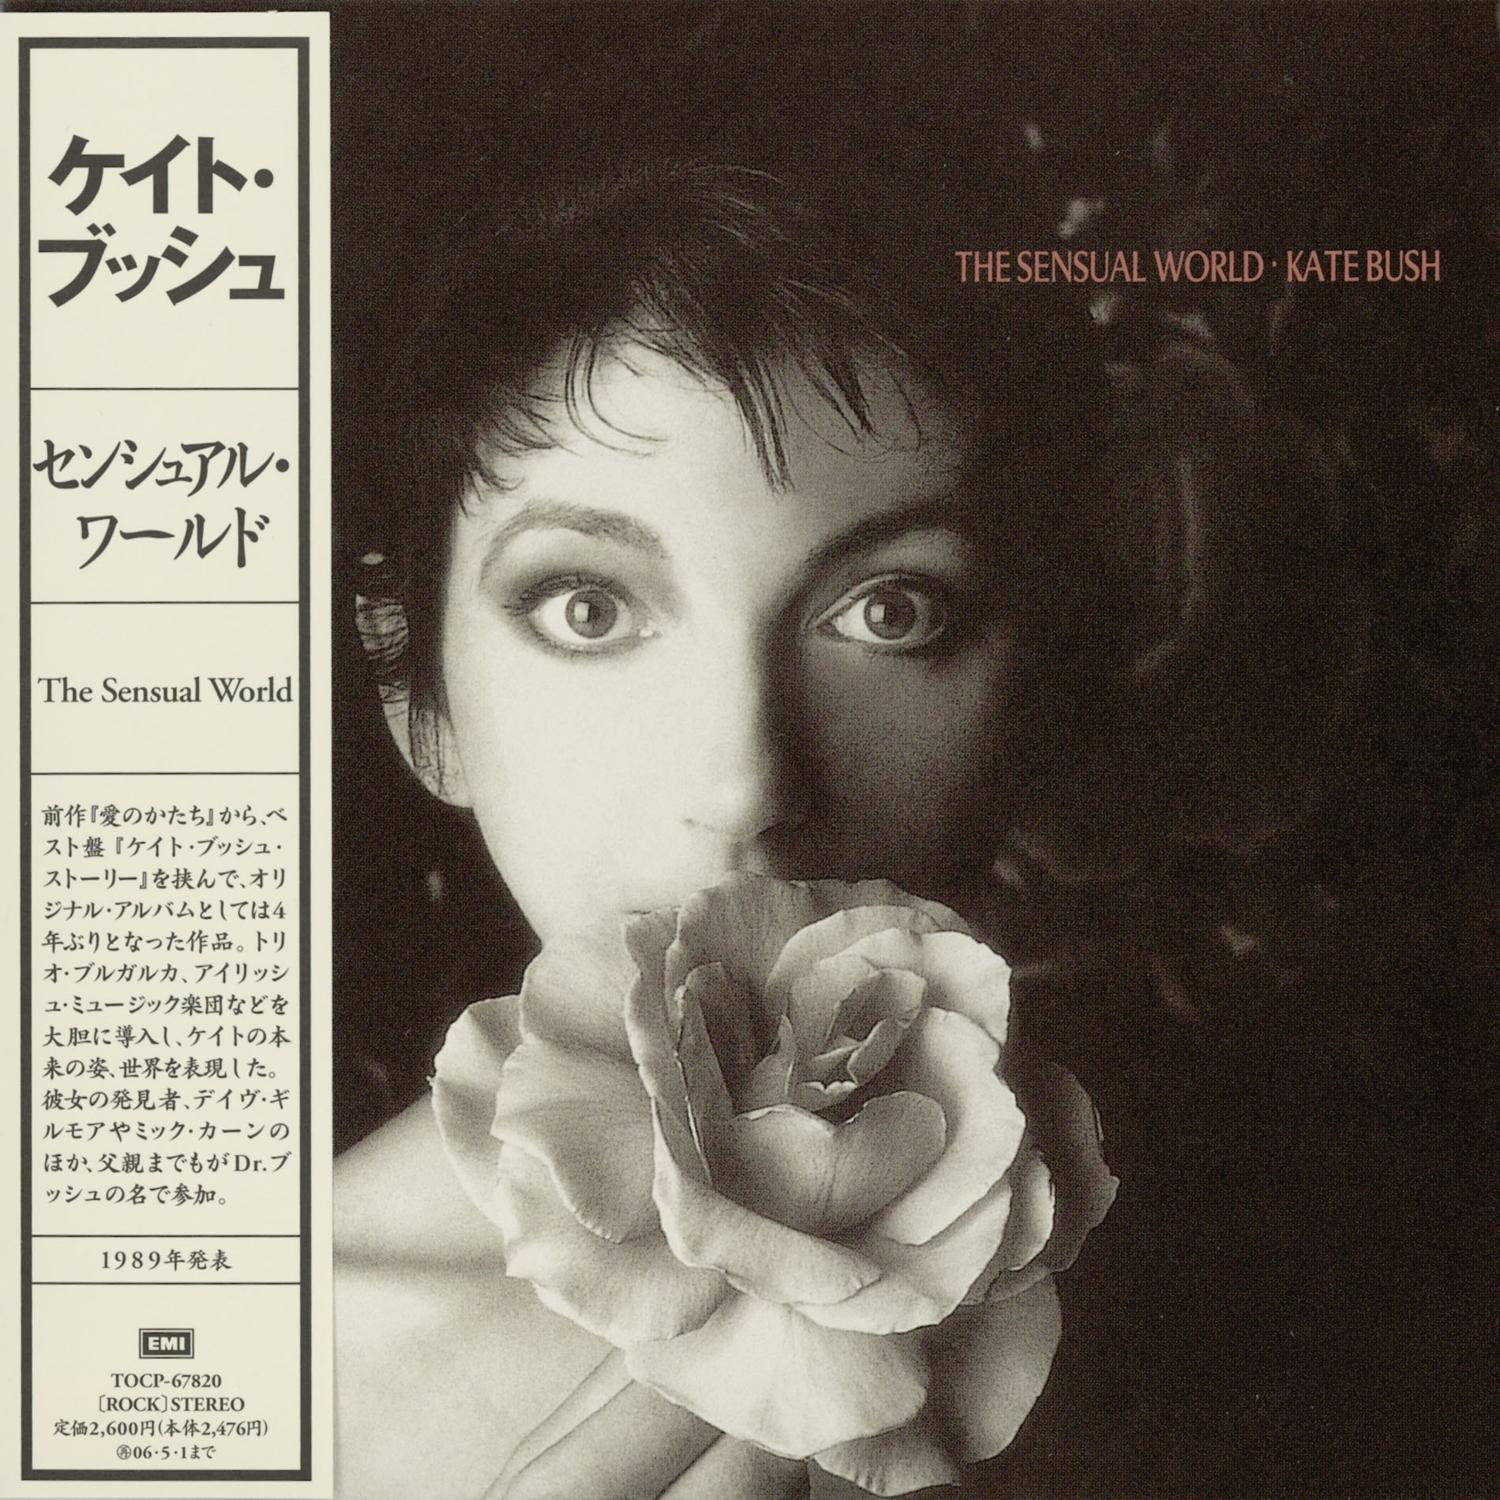 The Sensual World - Japanese Release - album cover